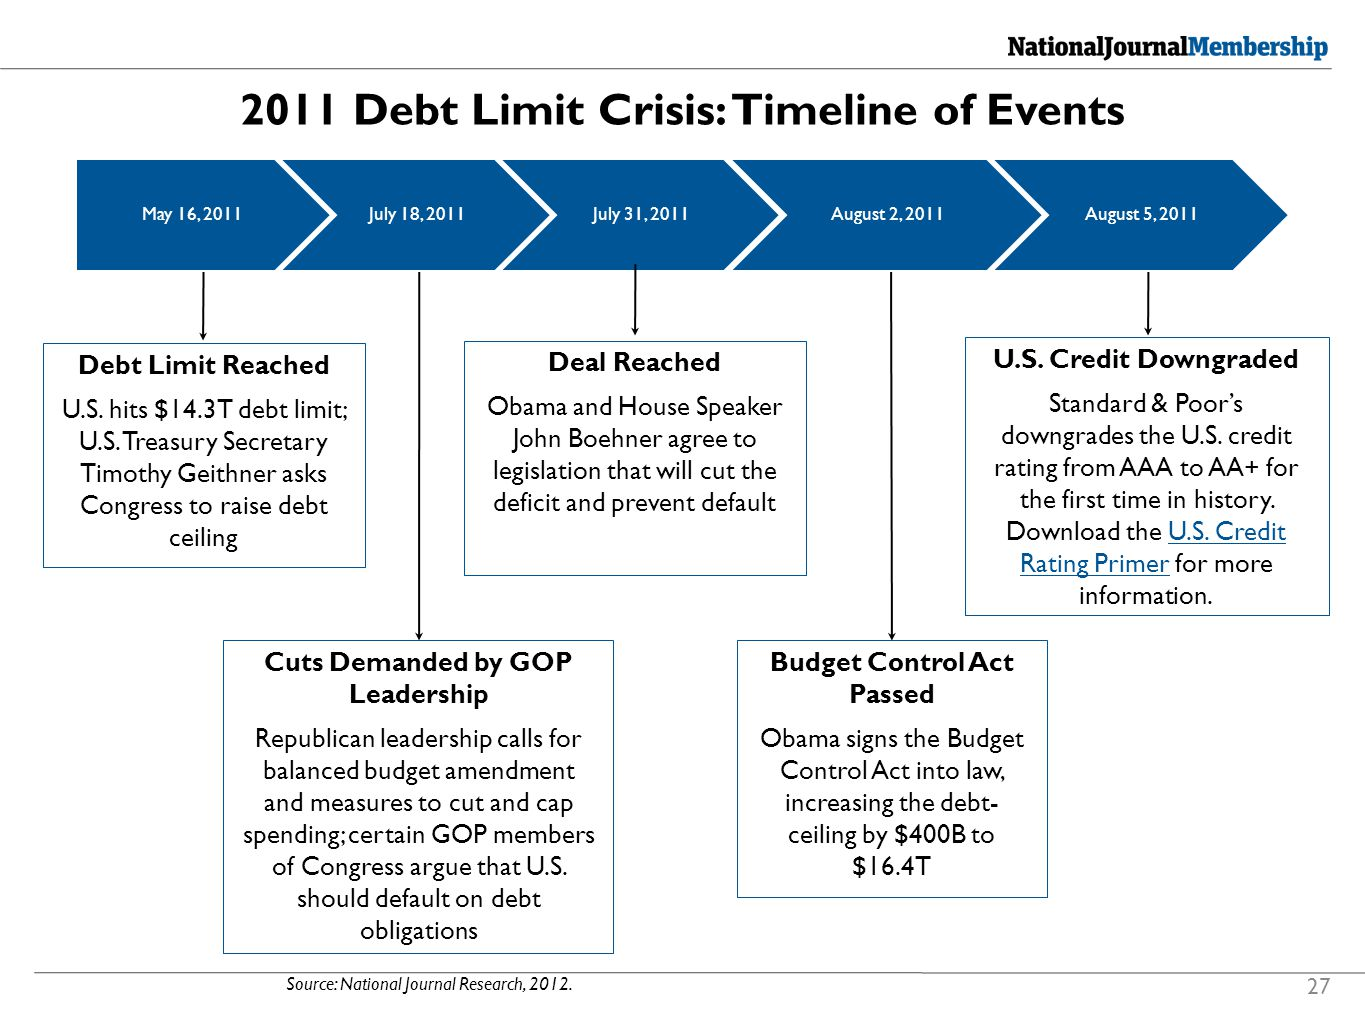 2011 Debt Limit Crisis: Timeline of Events Source: National Journal Research, 2012.